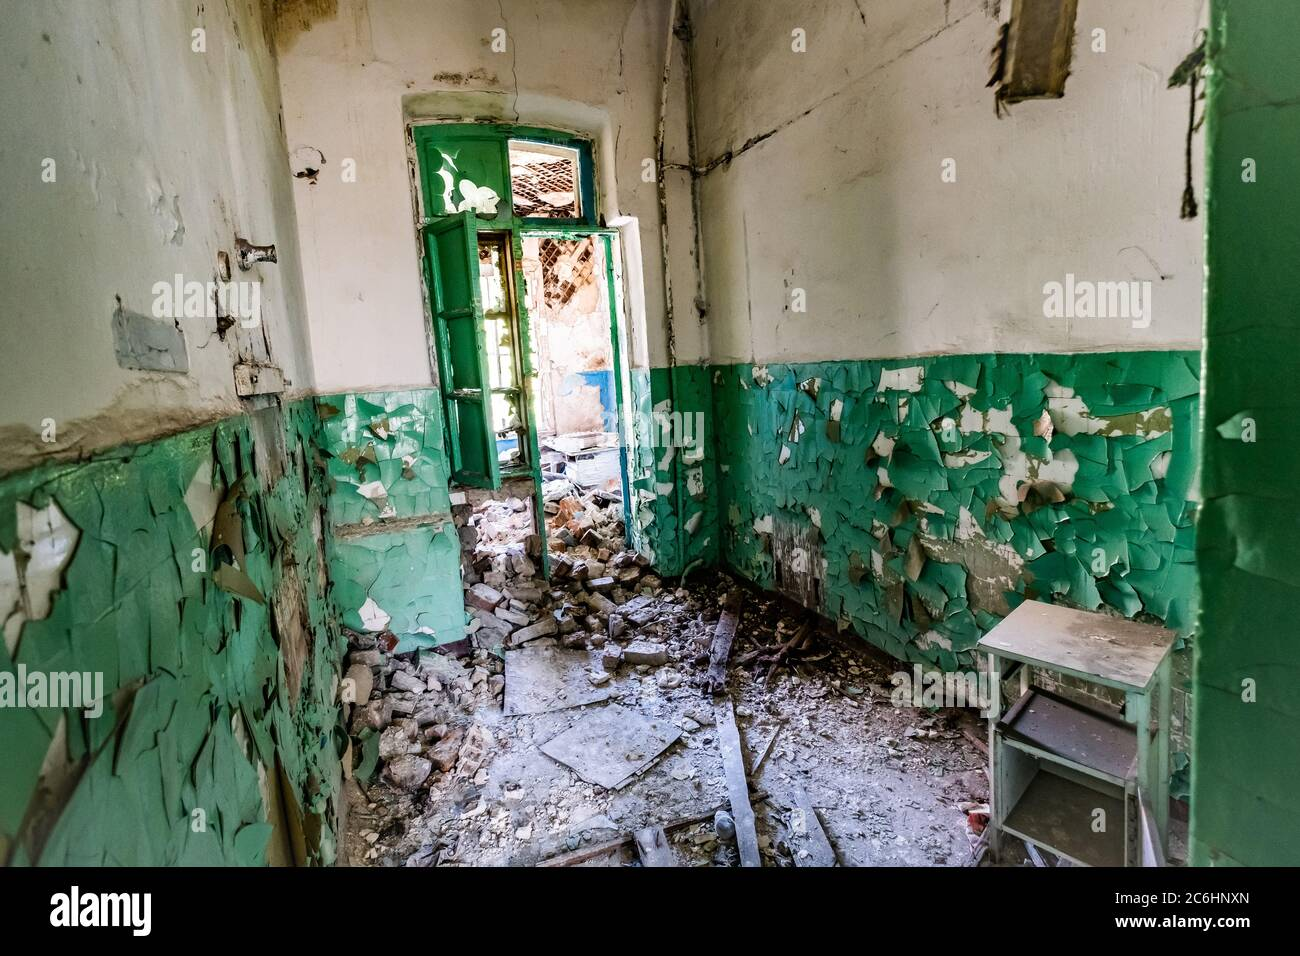 Ruined Corridor With Piles Of Garbage In Abandoned Asylum Stock Photo Alamy